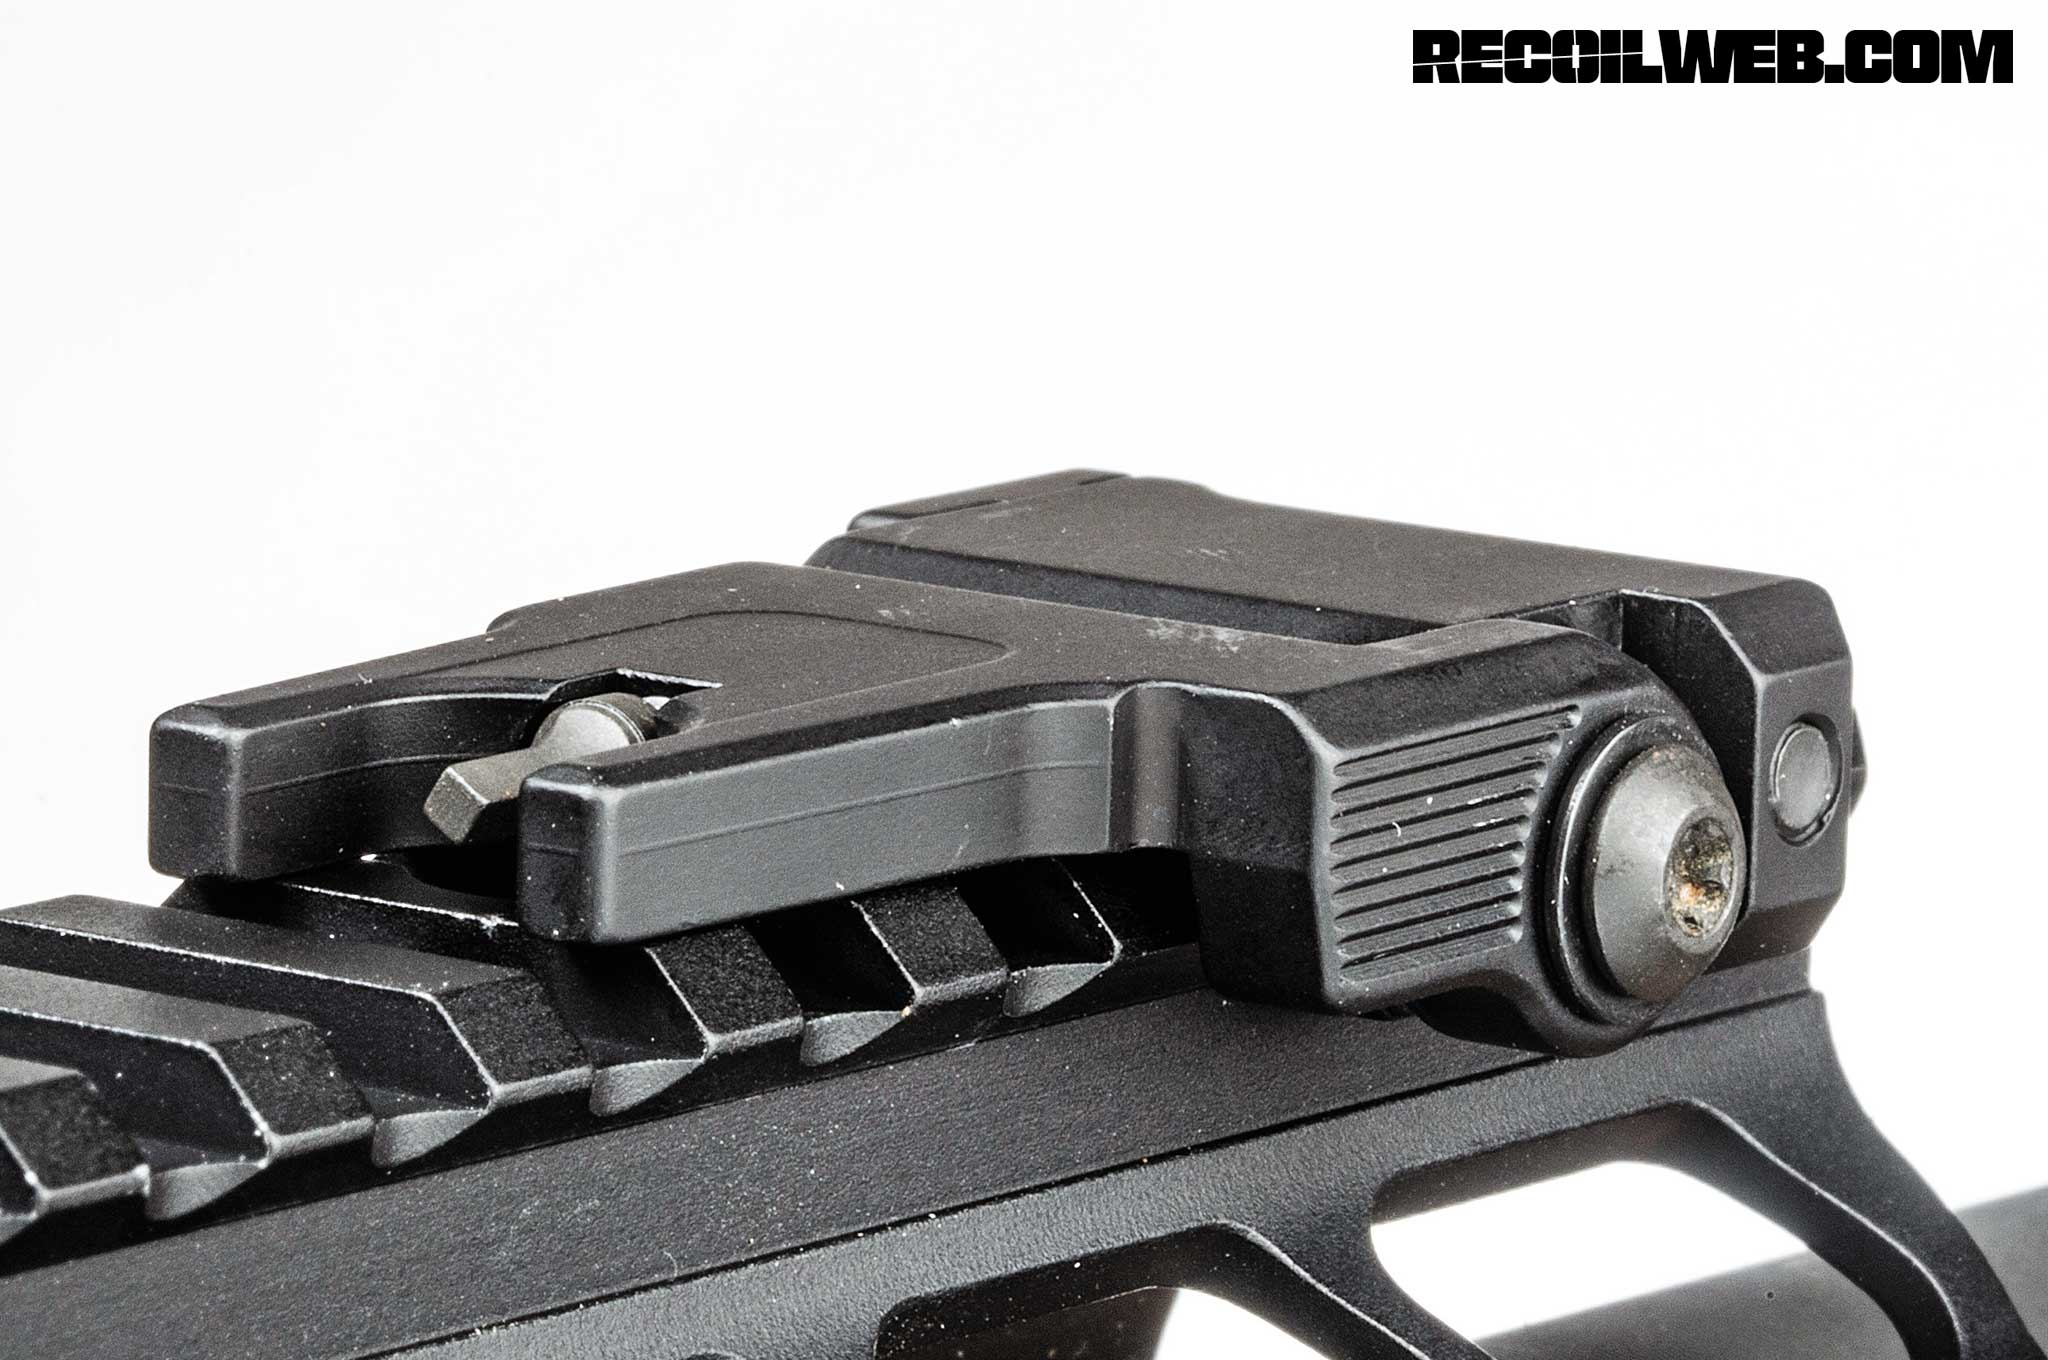 Back-up Iron Sights Buyer's Guide | RECOIL